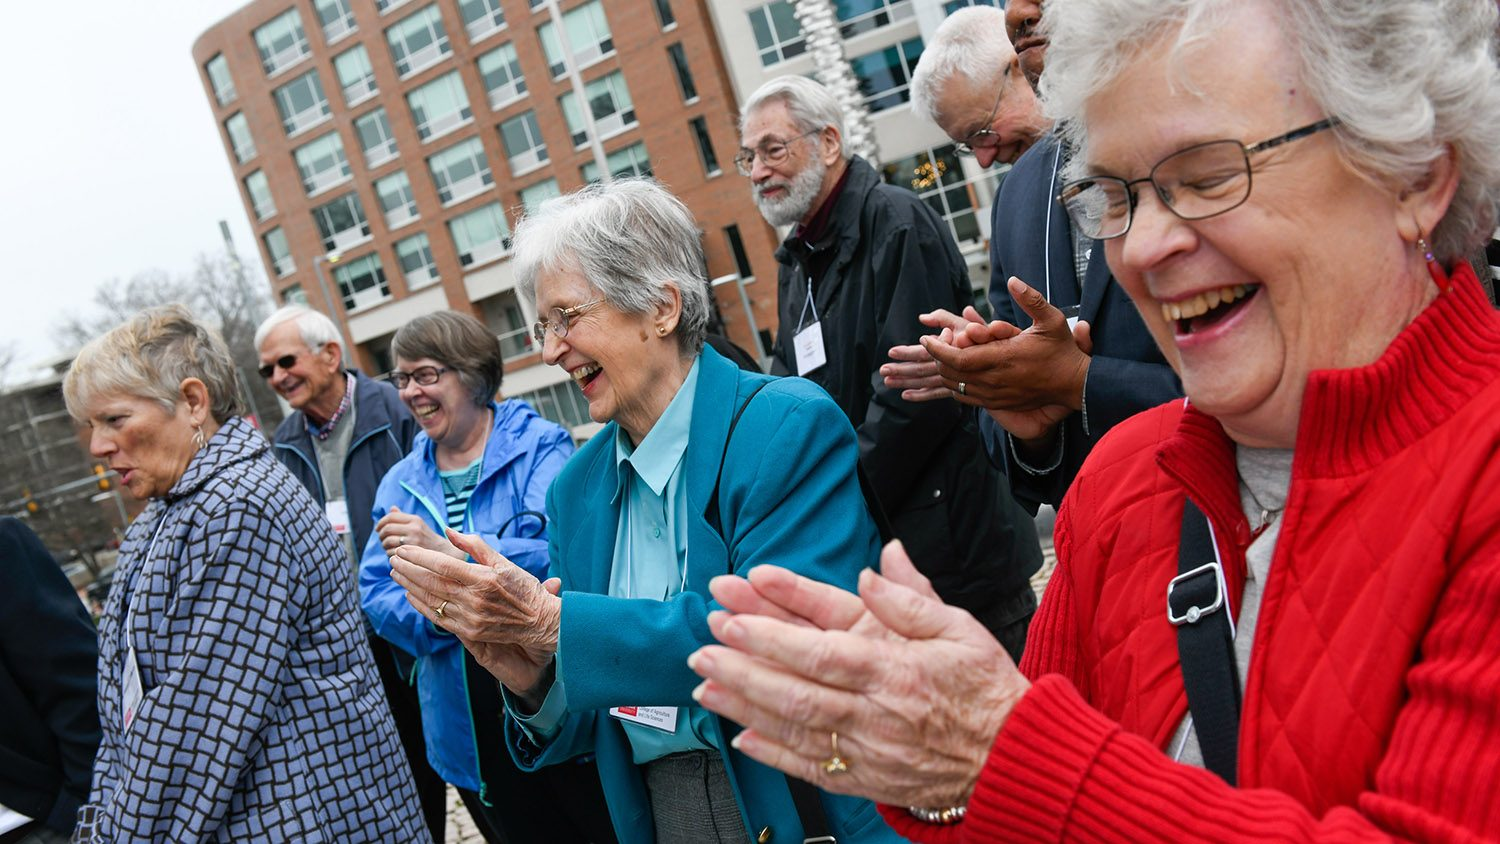 CALS donors applaud during Donor Appreciation Month events on NC State's campus.